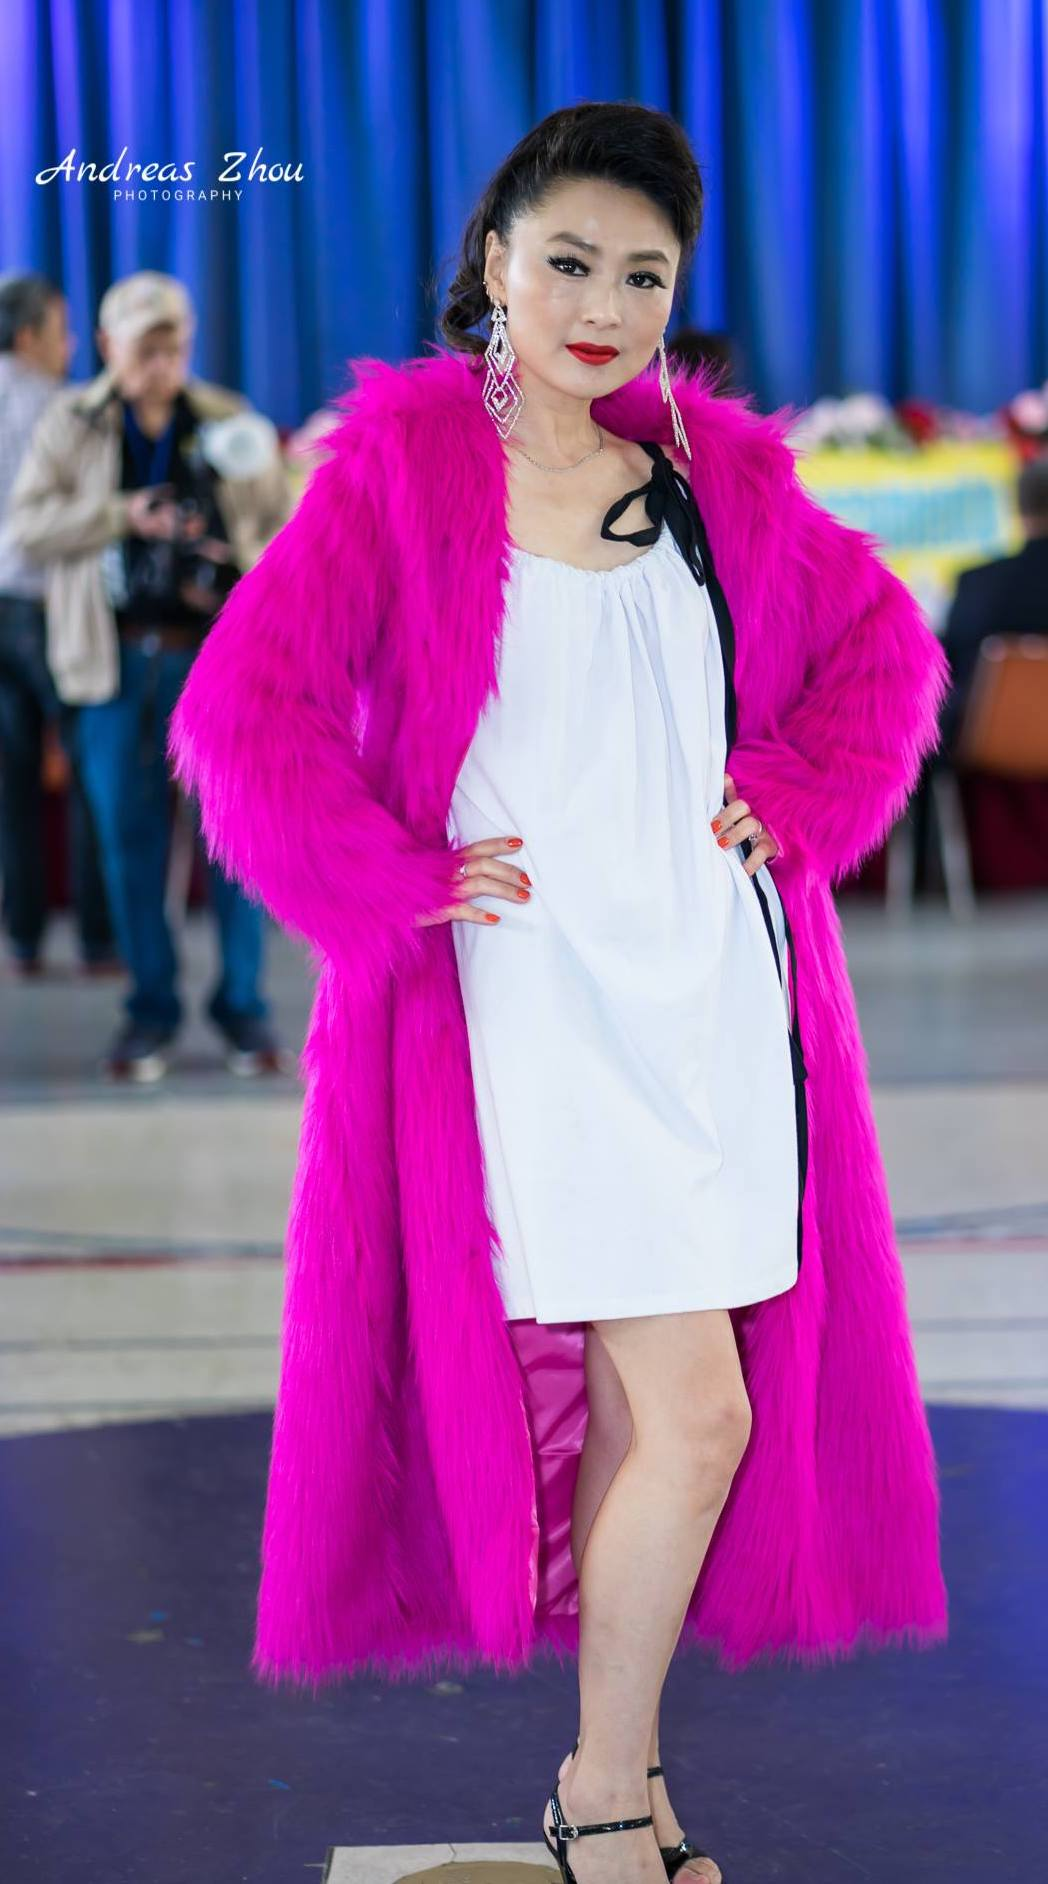 hot pink faux fur coat , long body faux fur coat christmas coat winter warm coat snow coat ski coat fur coat fashion show coat designer's coat unique hot pink coat christmas gifts idea black faux fur coat , long body faux fur coat christmas coat winter warm coat snow coat ski coat fur coat fashion show coat designer's coat unique coat christmas gifts idea best birthday gift faux fur coat cheap luxury faux fur coat women's faux fur coat plus size full length faux fur coat faux fur coat wedding fox fur coat